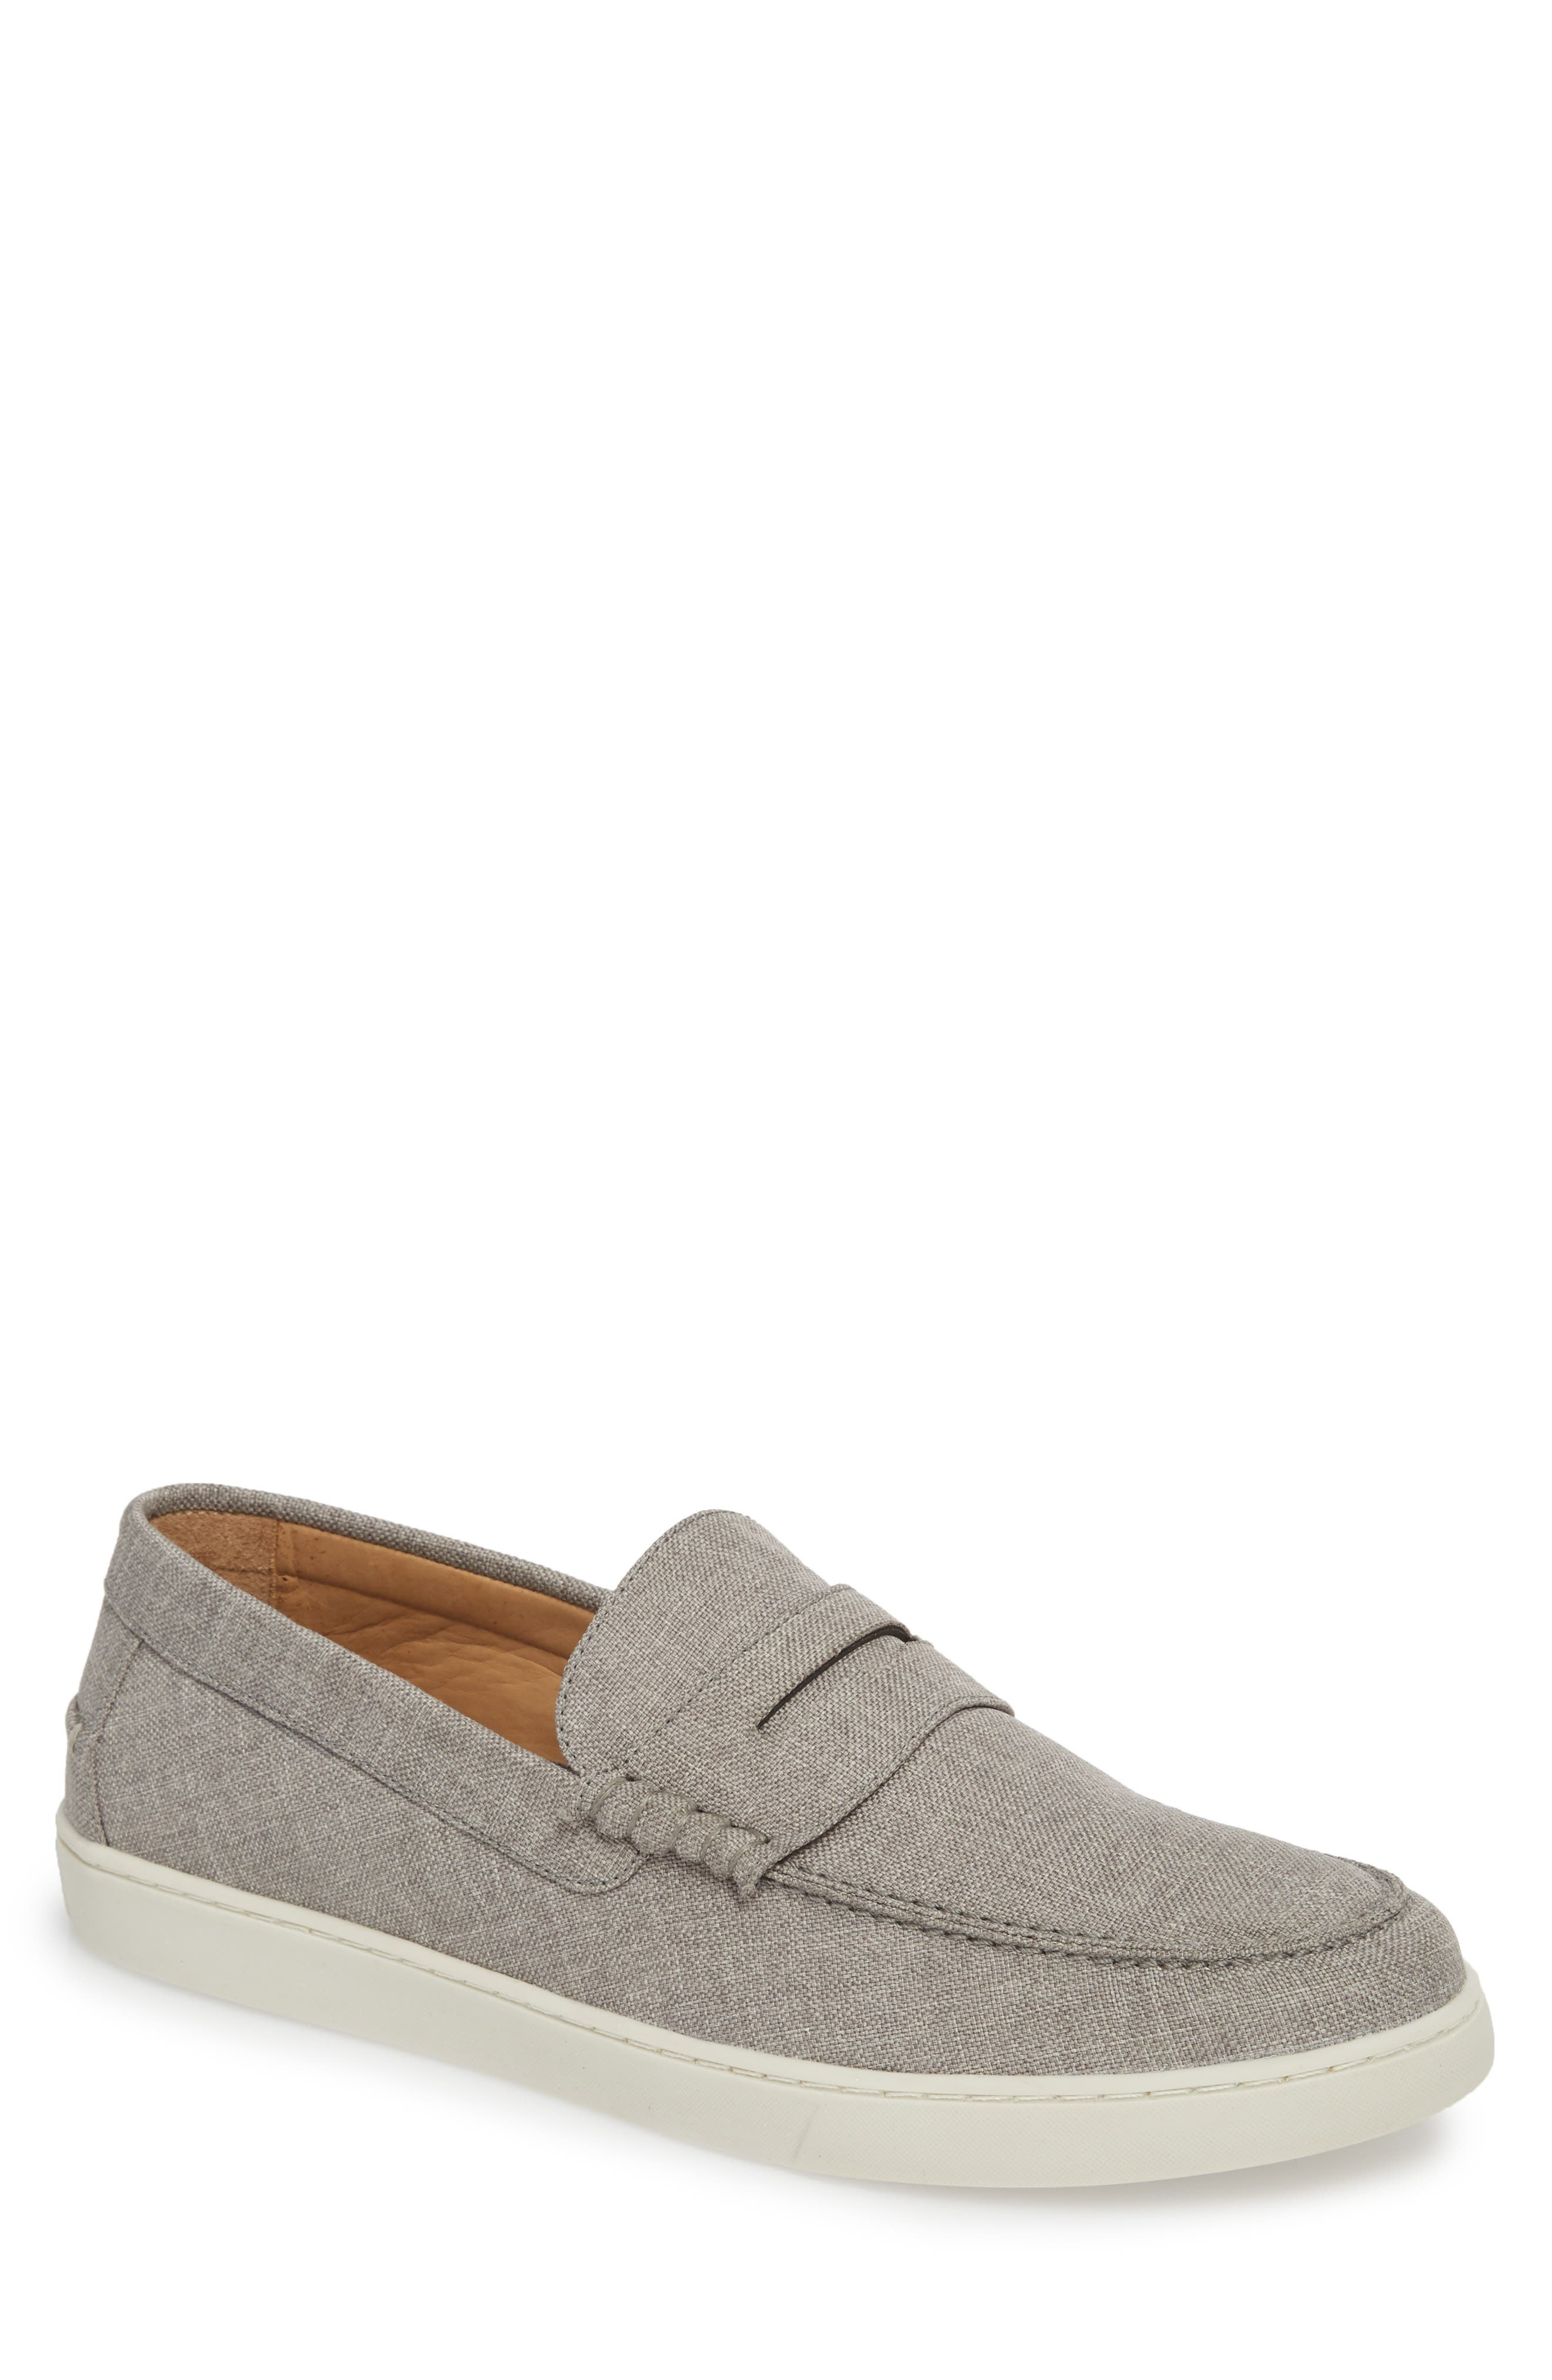 Chelan Penny Loafer,                         Main,                         color, GREY CANVAS